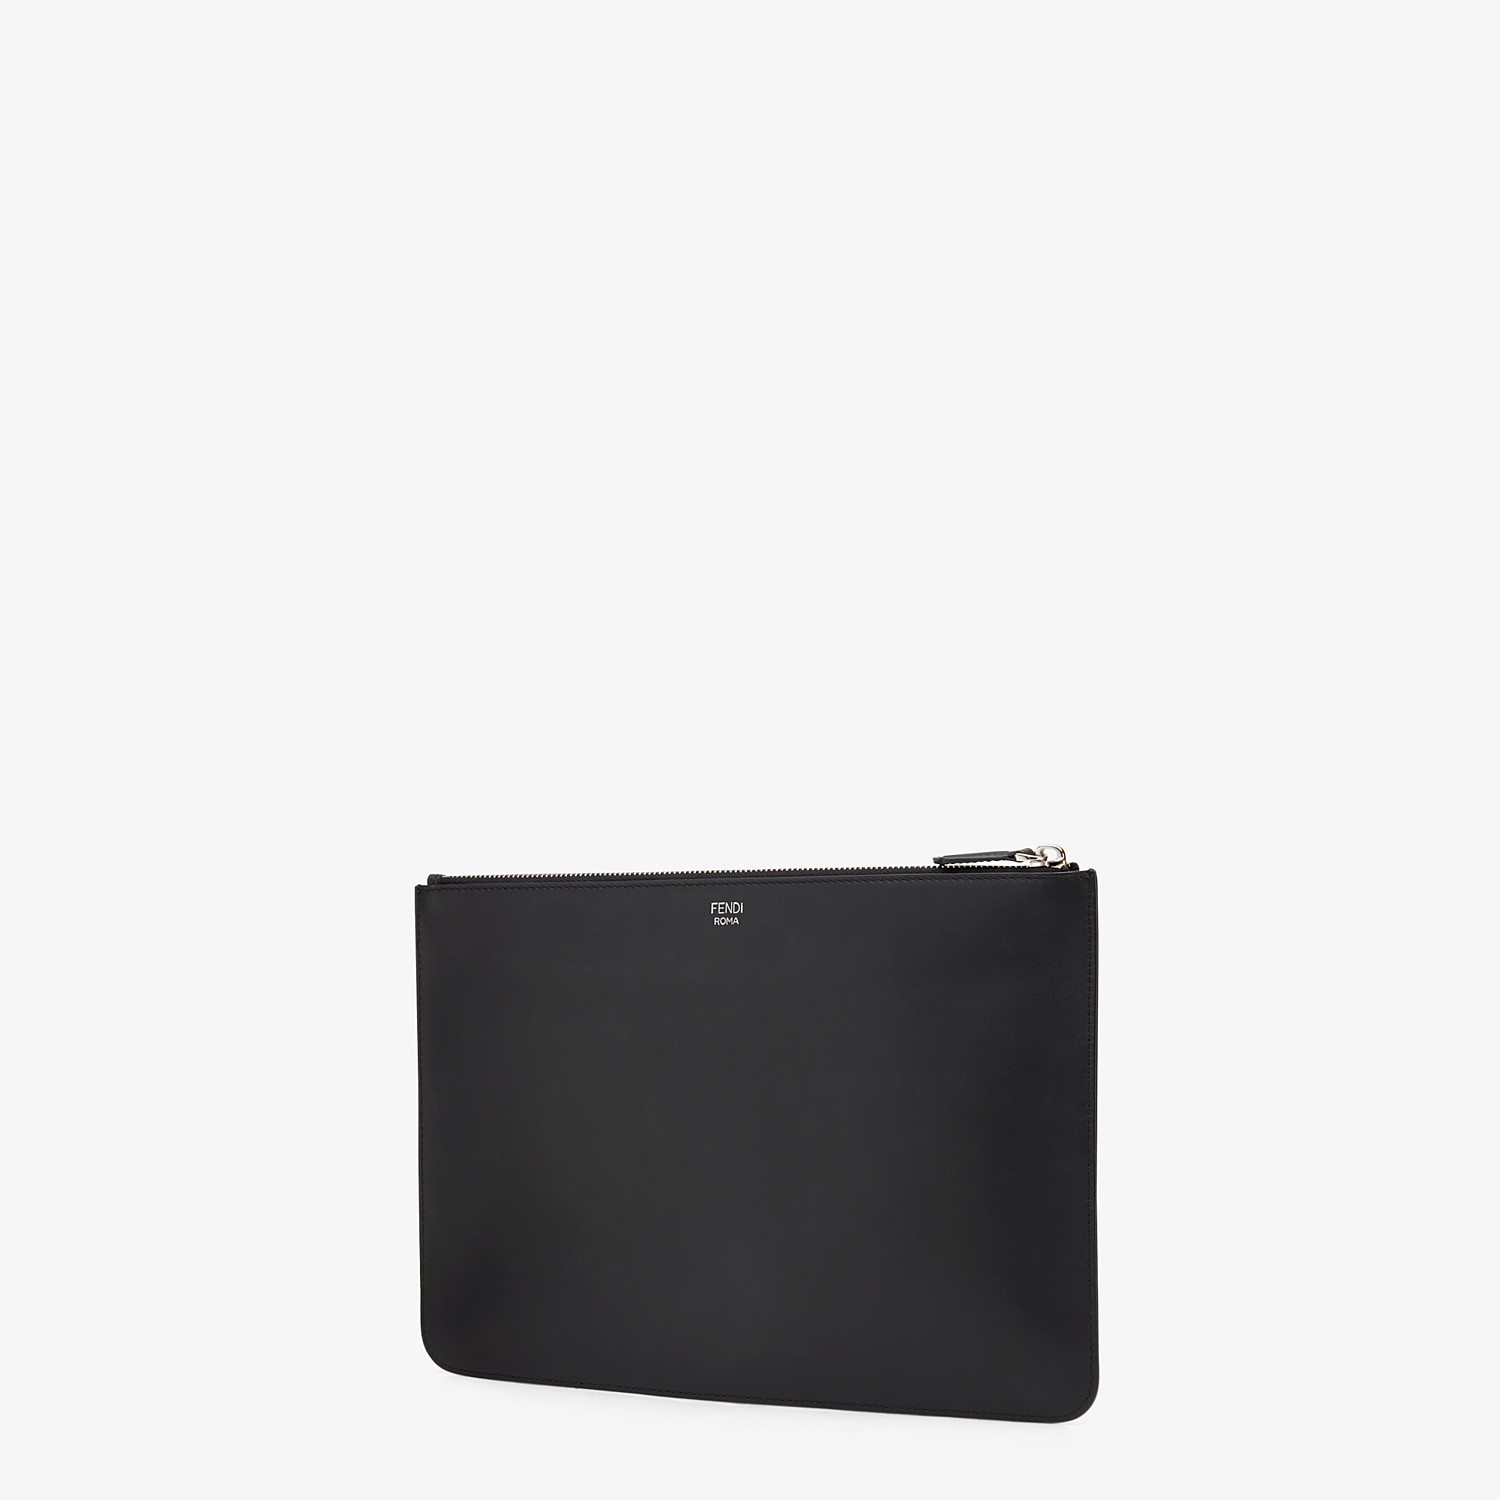 FENDI POUCH - Black leather and metal pochette - view 2 detail